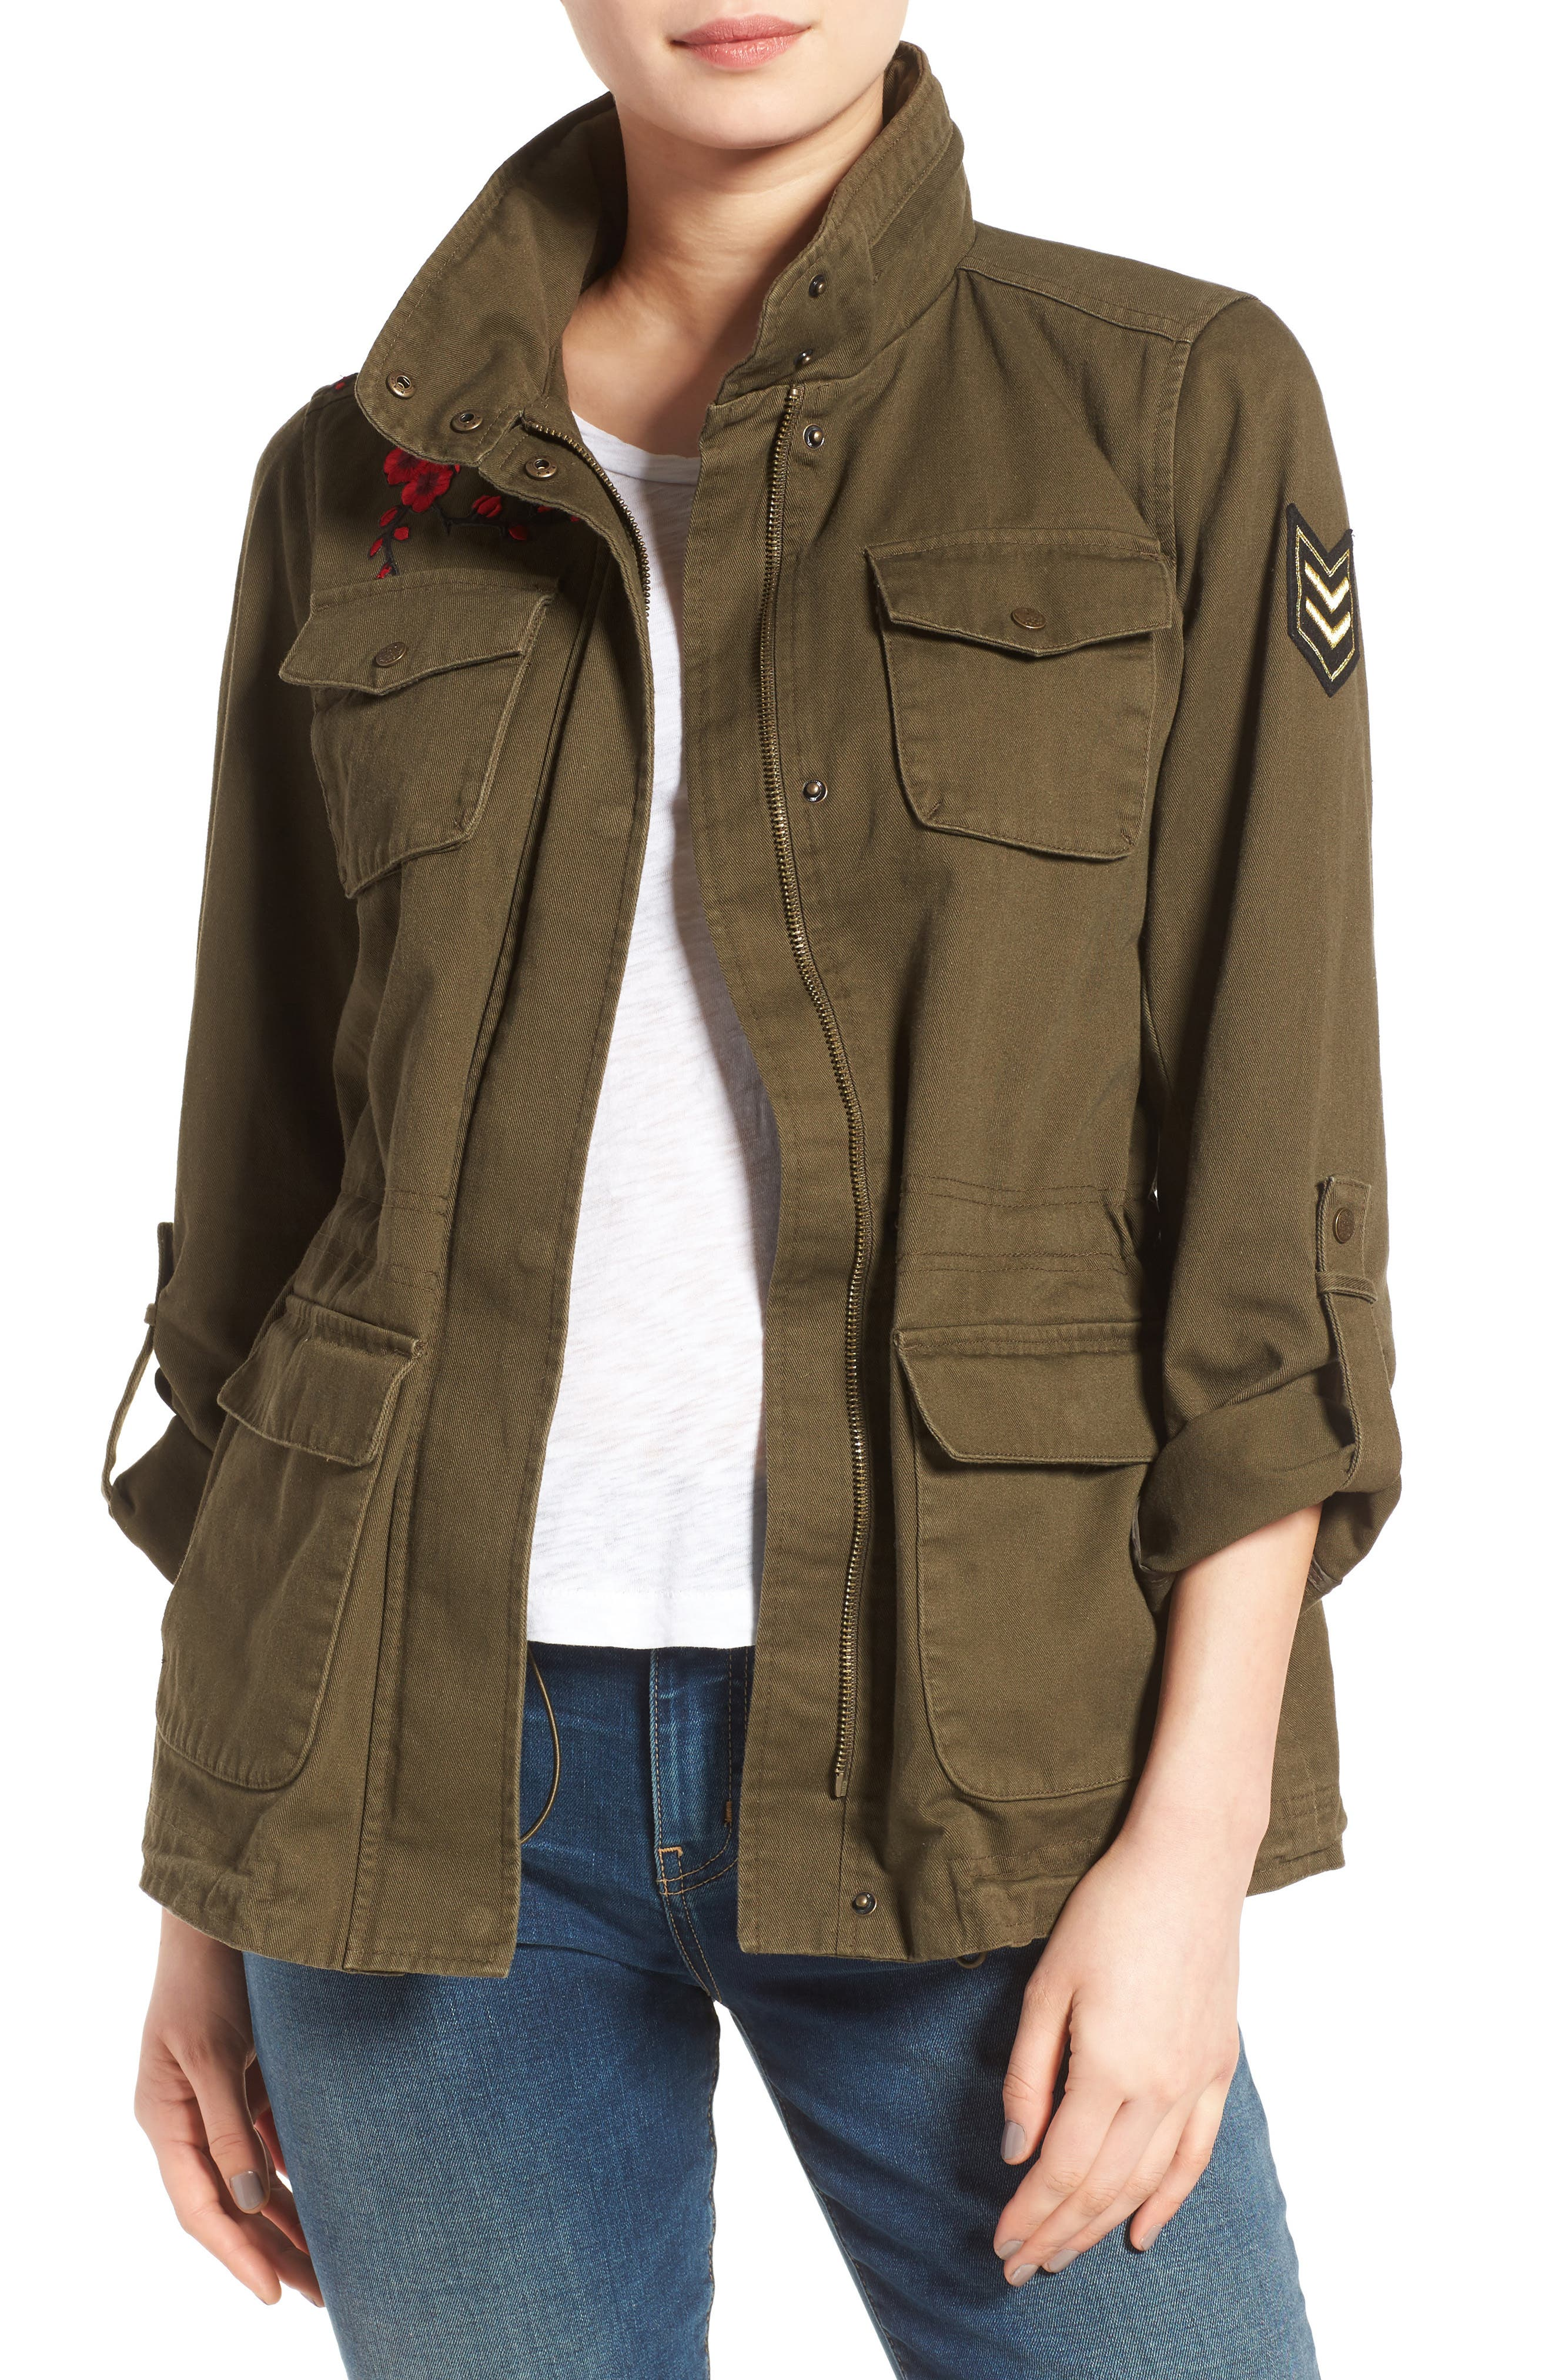 Alternate Image 1 Selected - Vince Camuto Embroidered Cotton Twill Utility Jacket